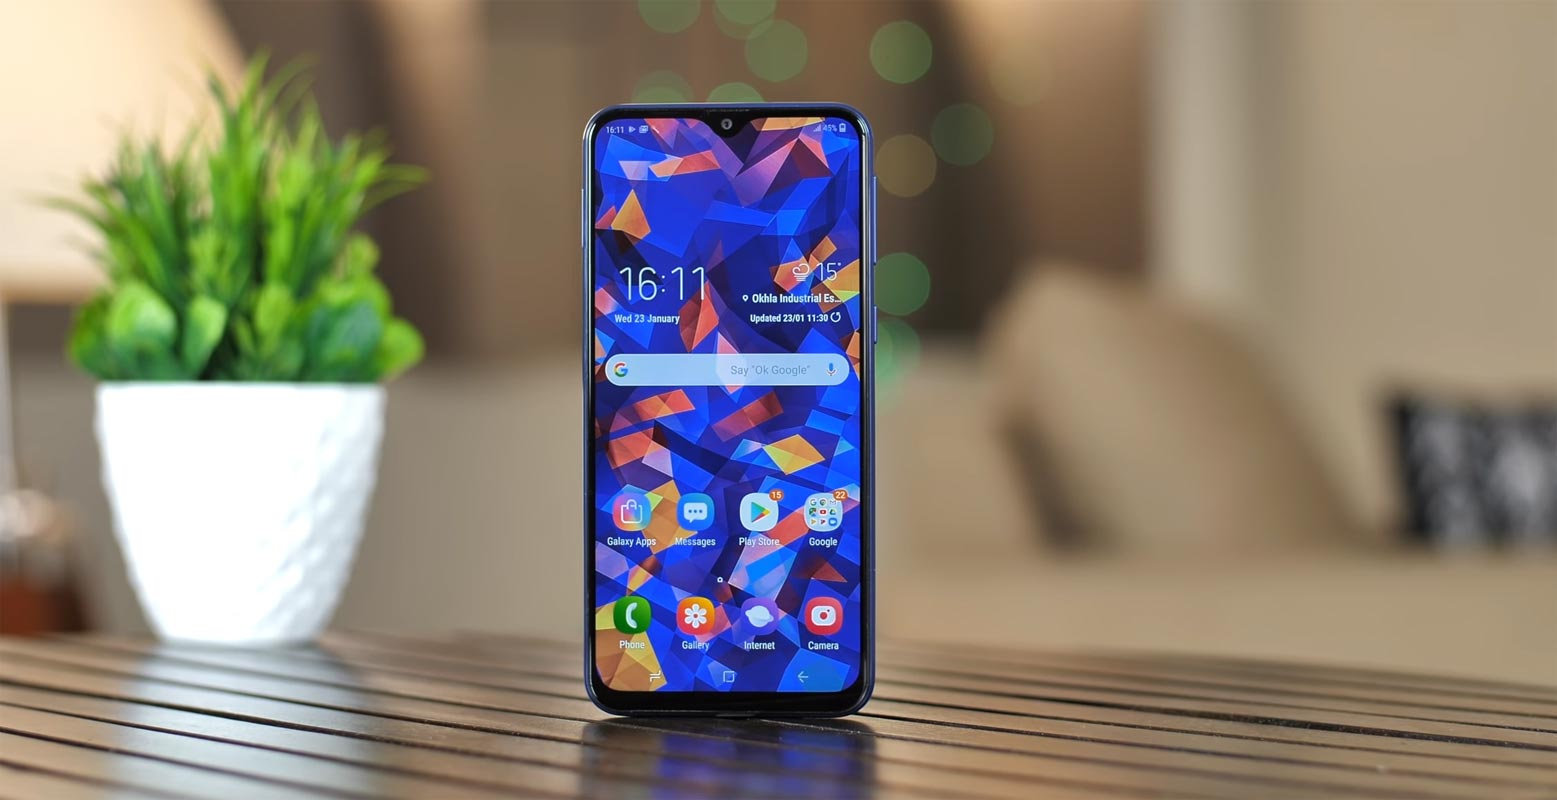 Samsung Galaxy M20 on the Wooden Table